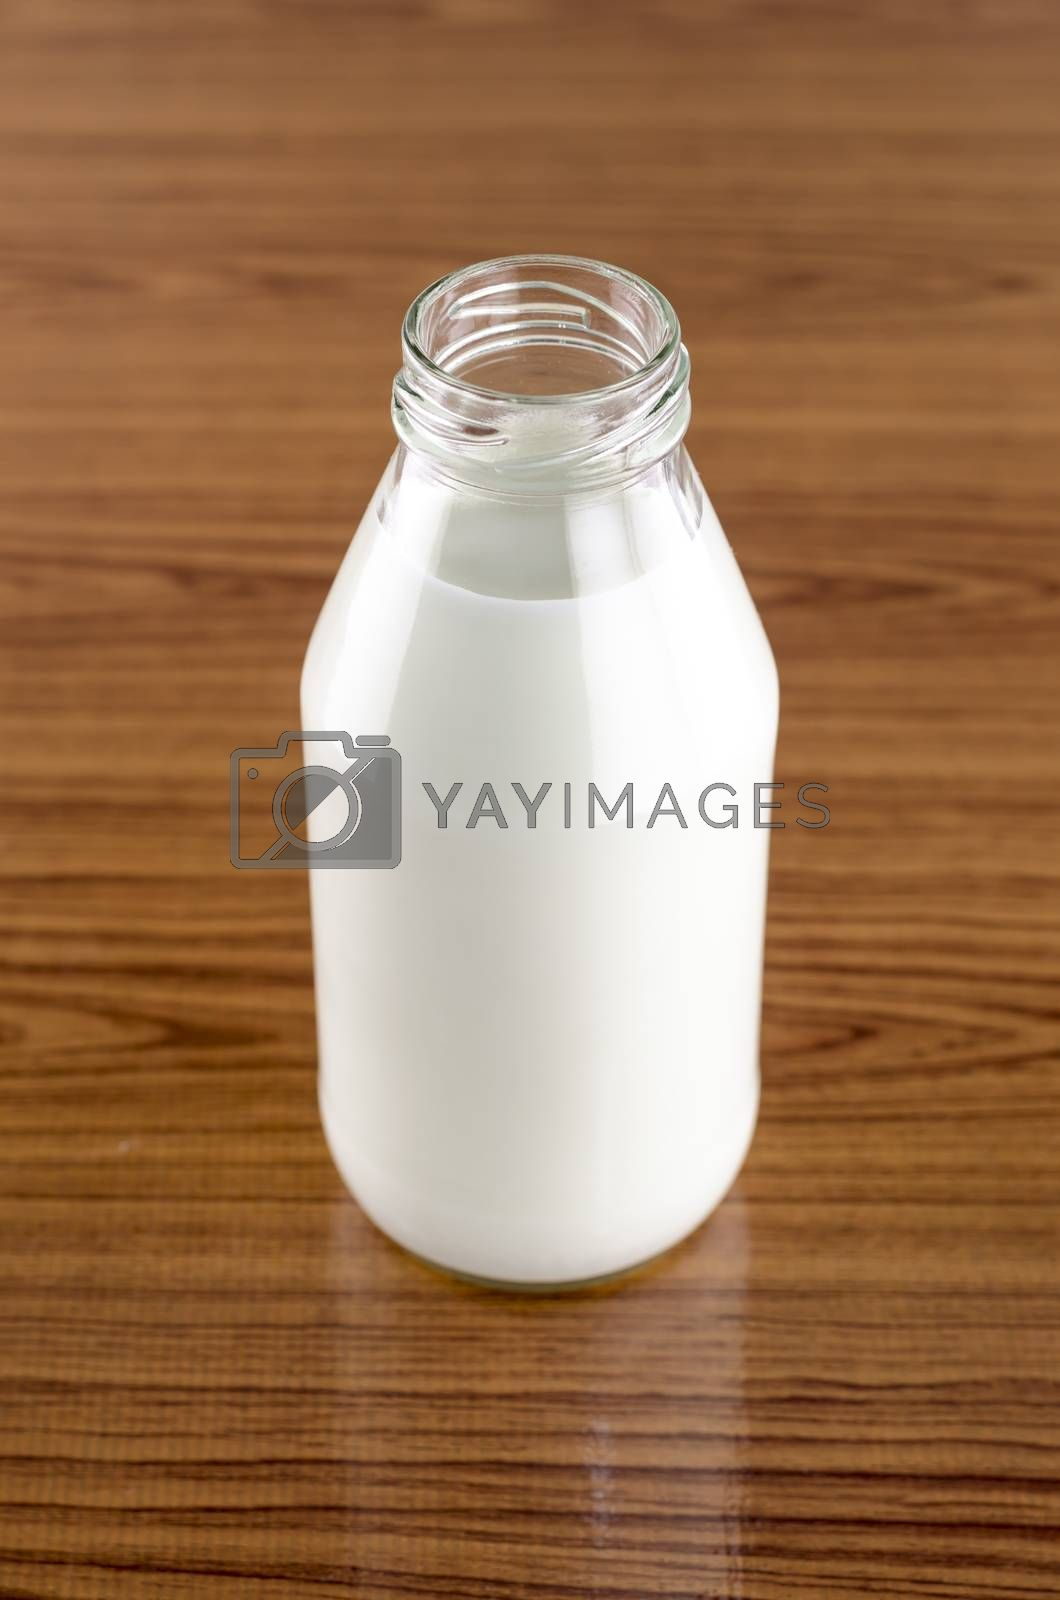 Royalty free image of milk in a glass of bottle by ammza12